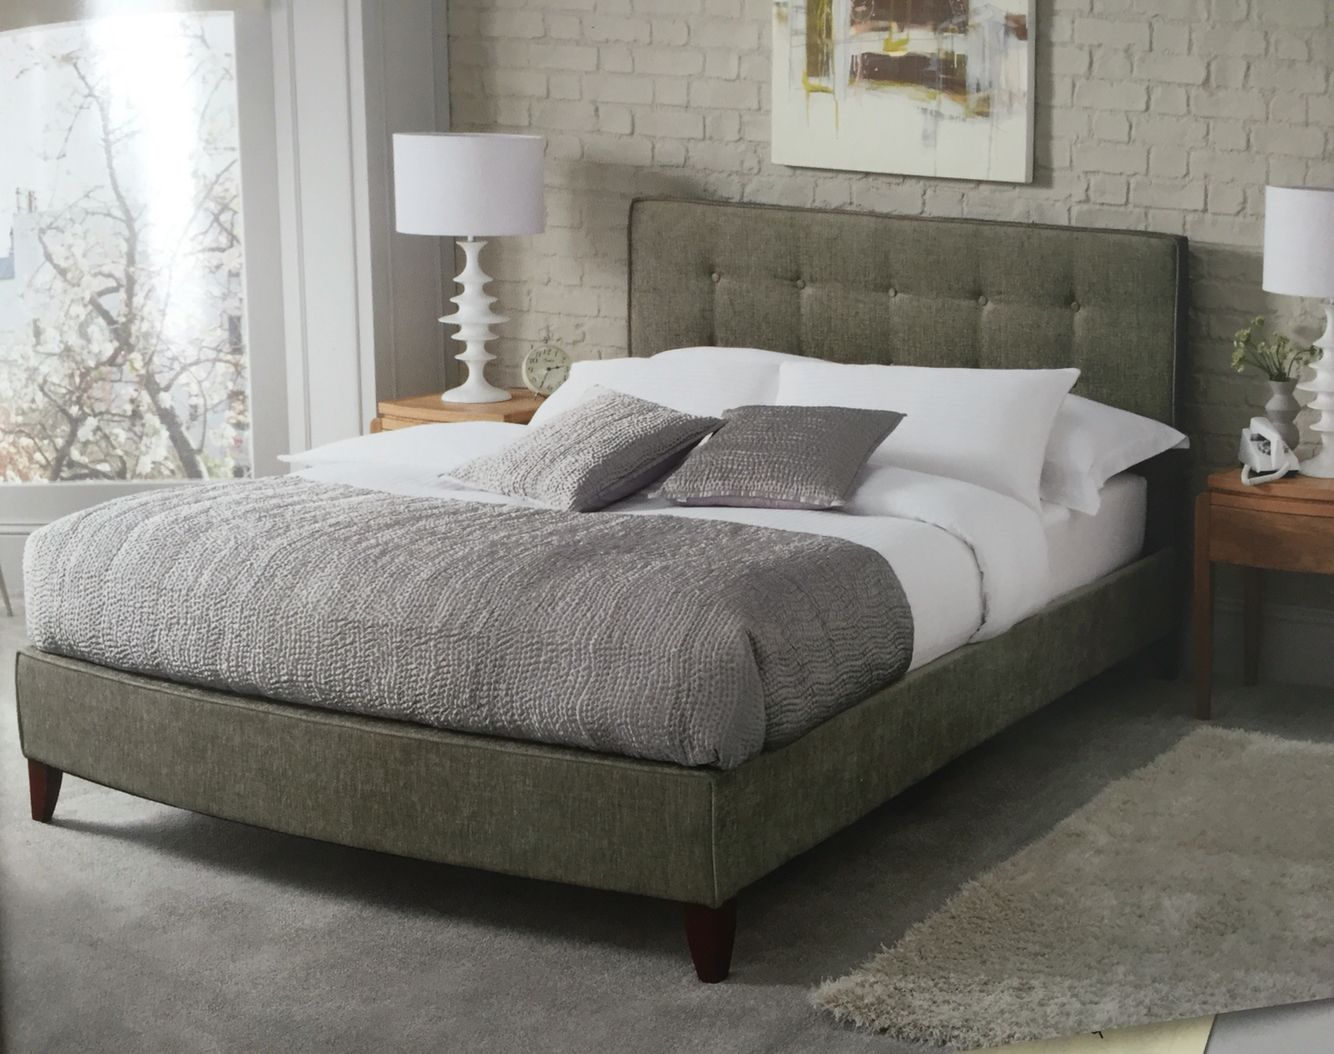 Pin by joel rock on Cocoon (With images) Upholstered bed